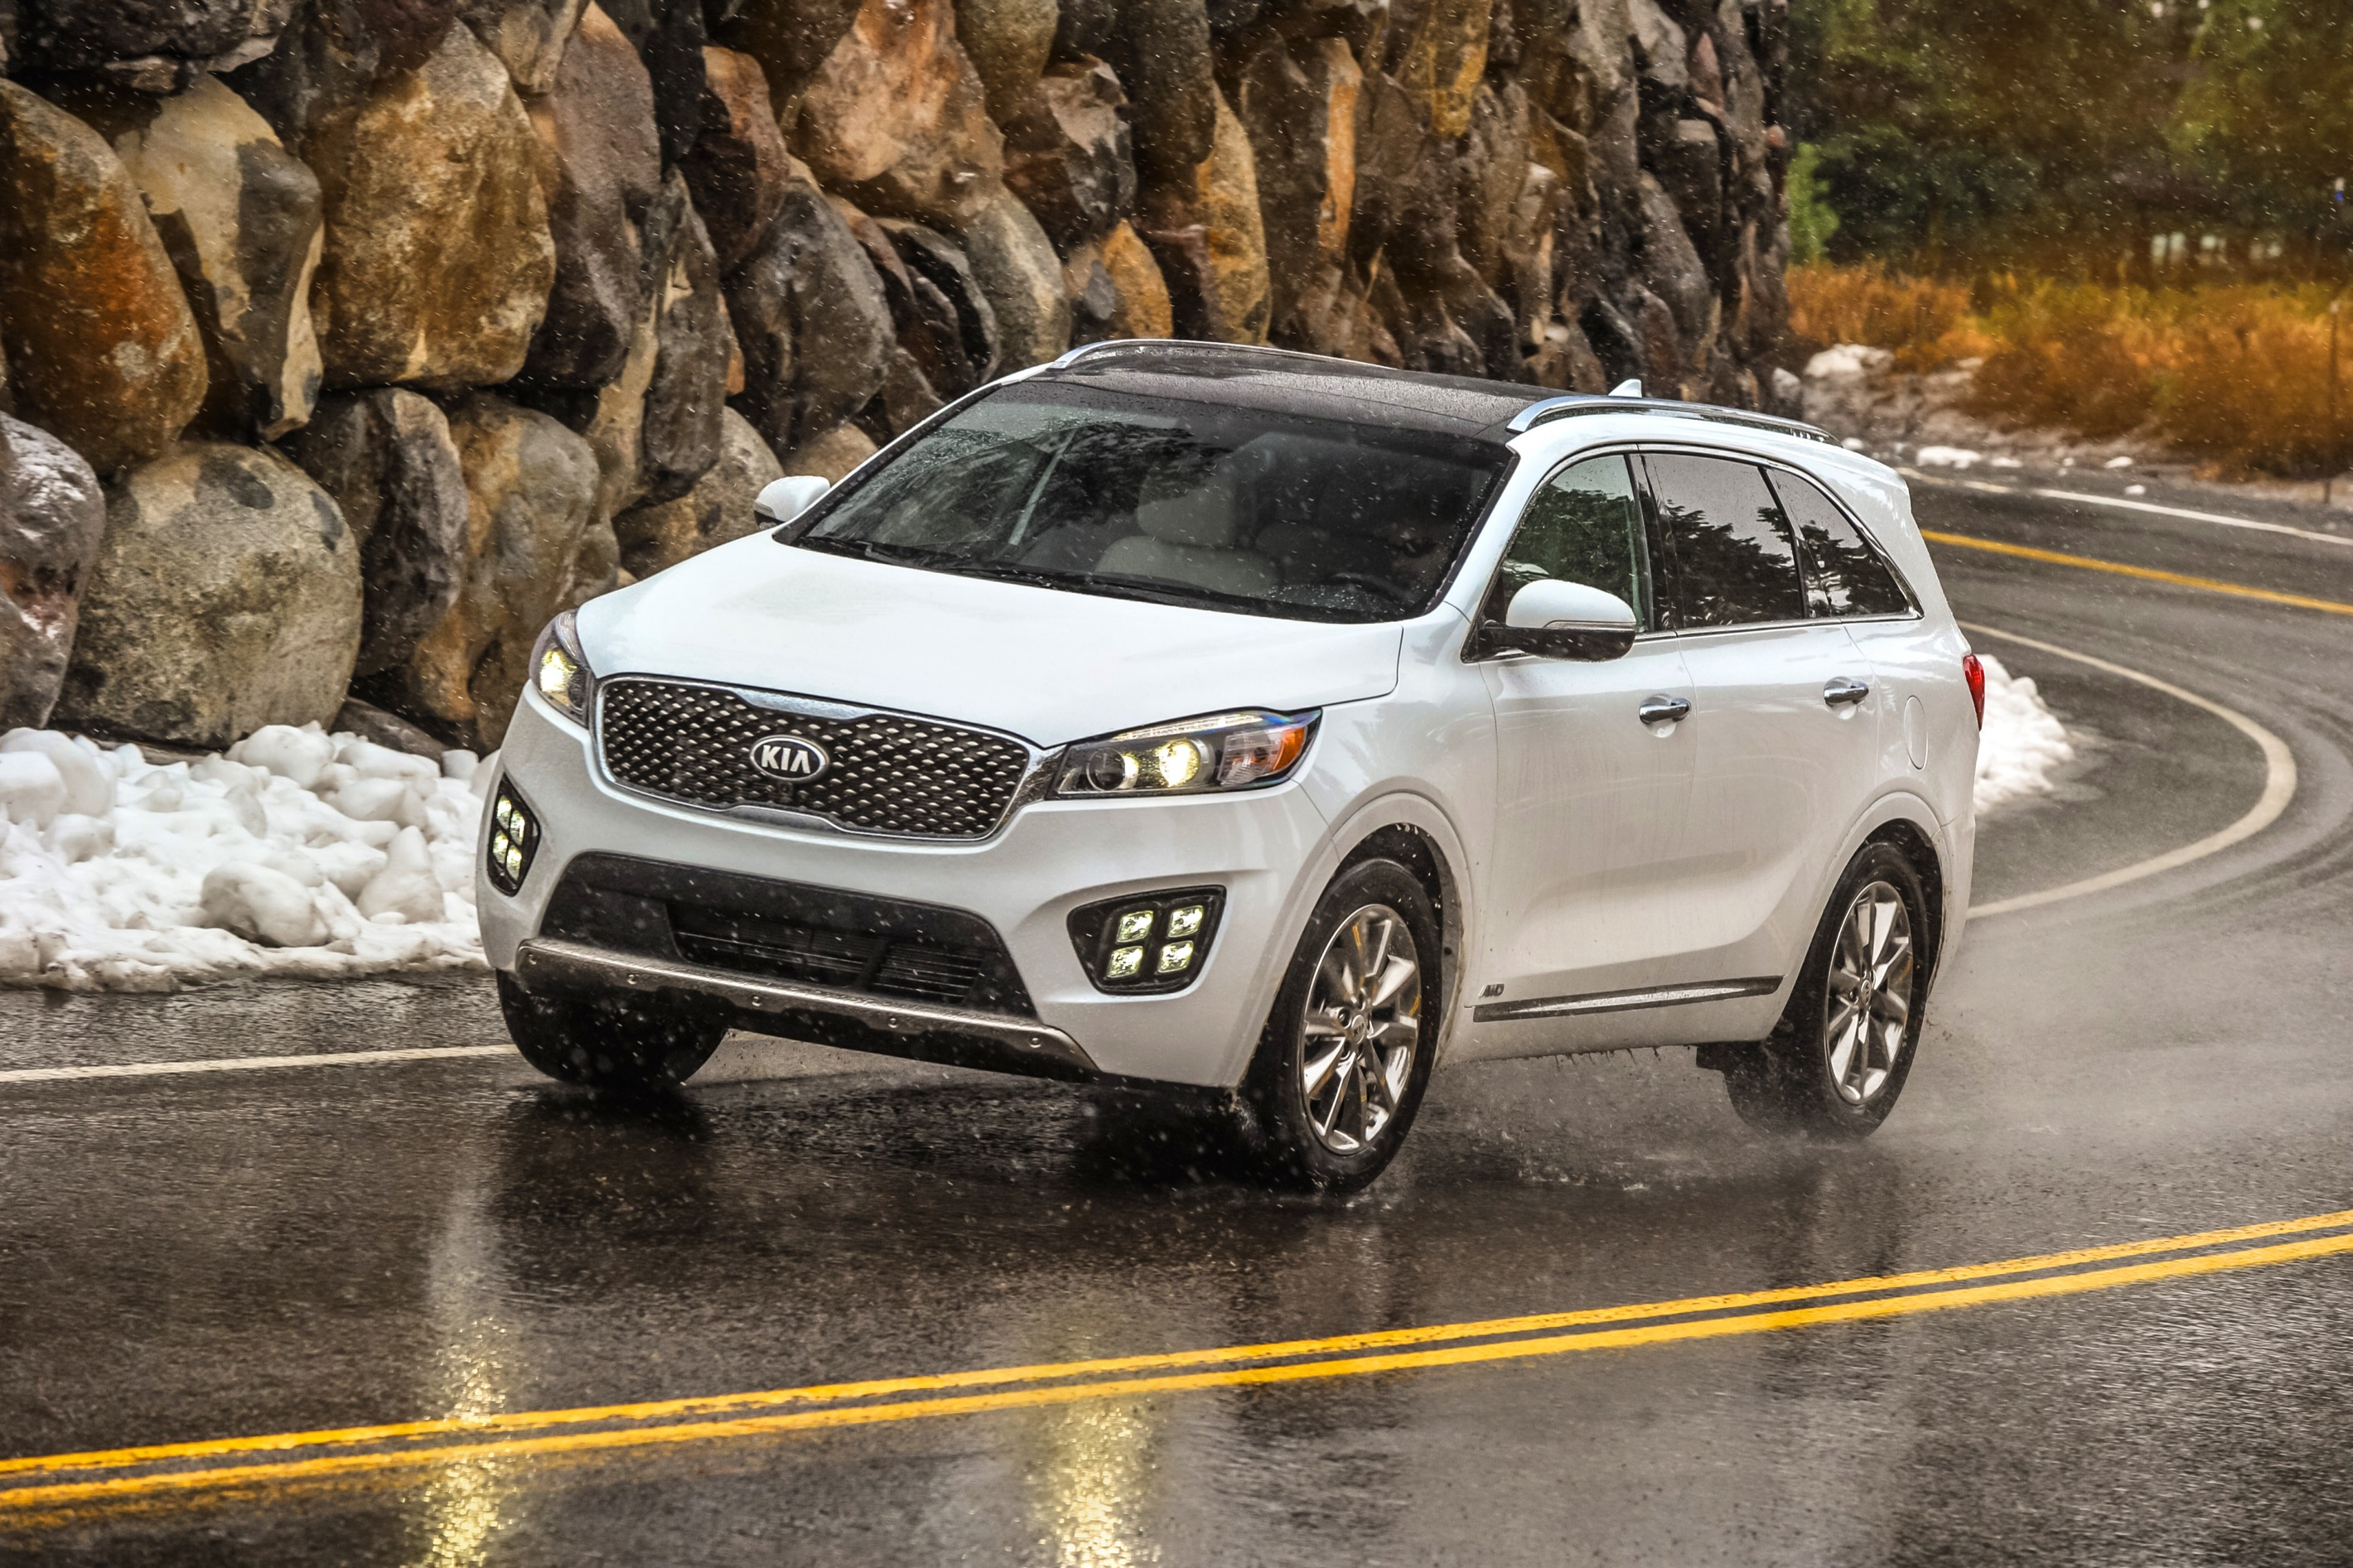 2017 Kia Sorento Vs 2017 Ford Edge Compare Cars